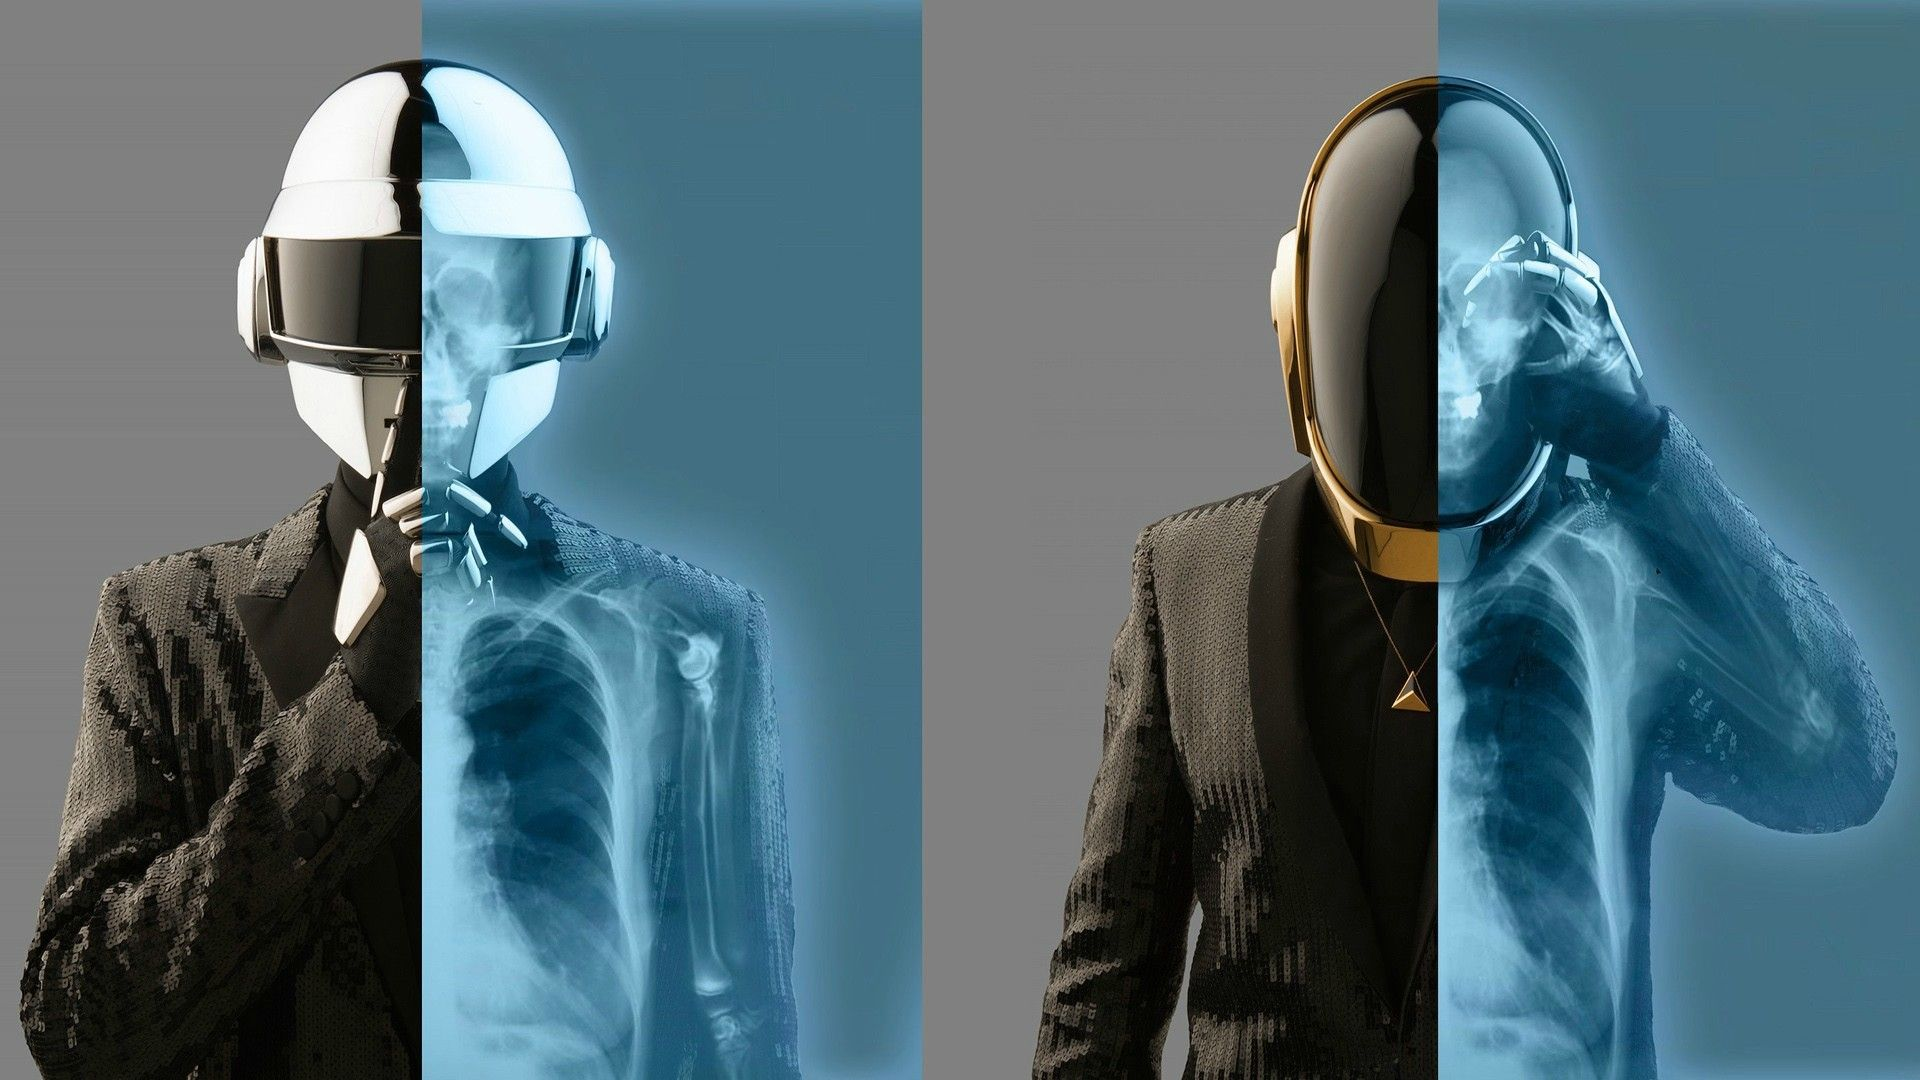 daft punk cool disco suits music pictures wallpapers daft